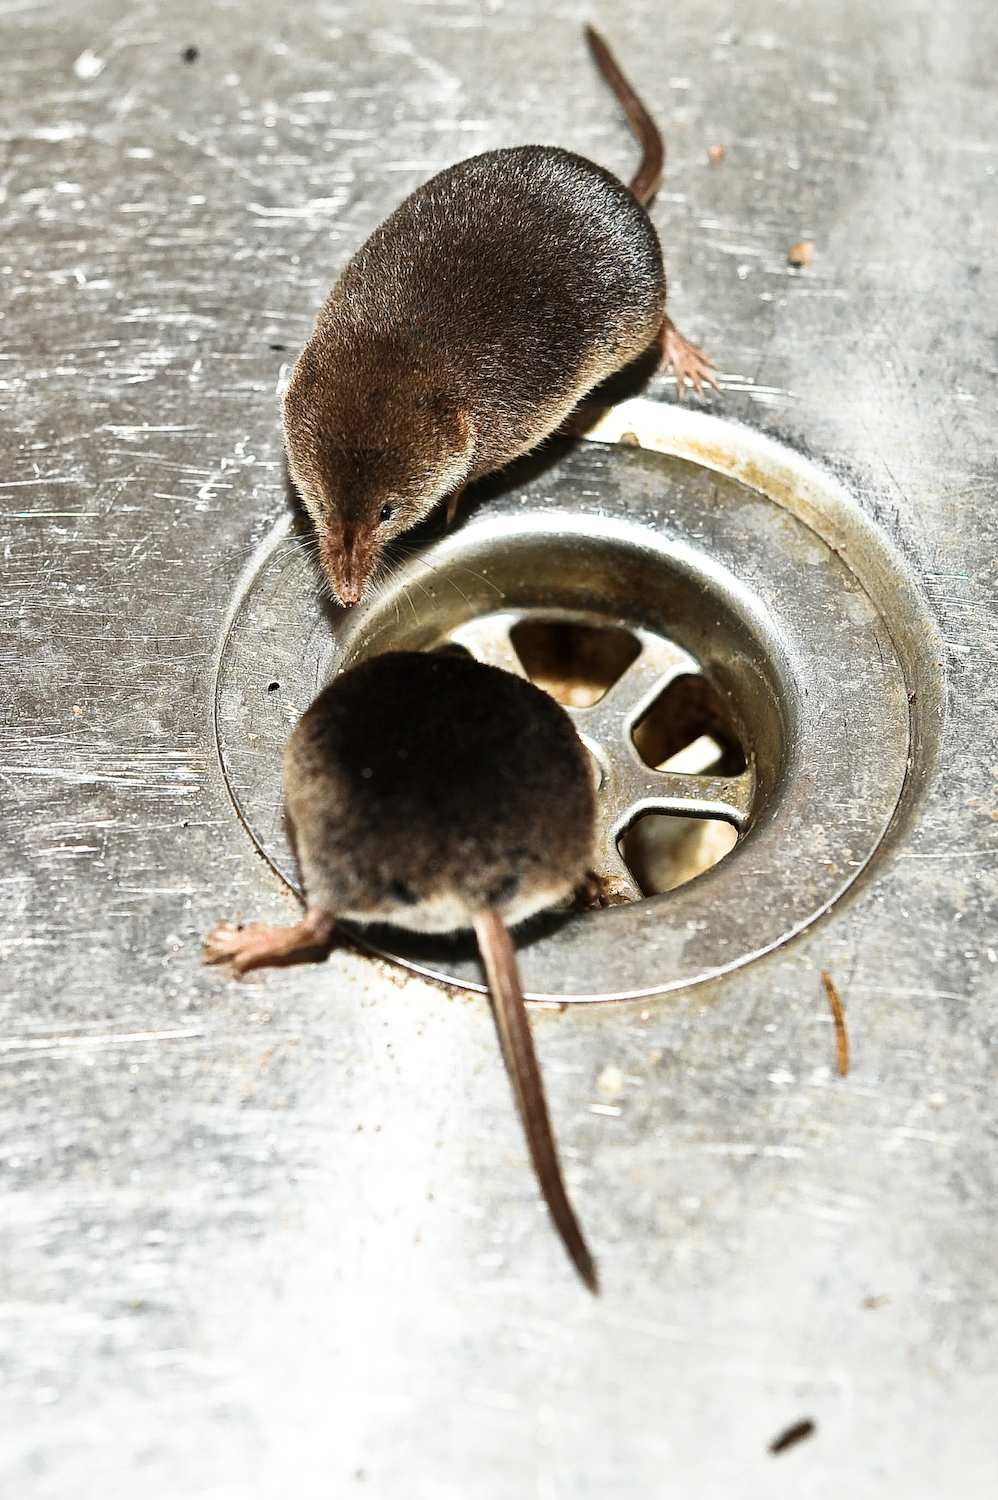 shrew mom and jr in the sink author soini hannu